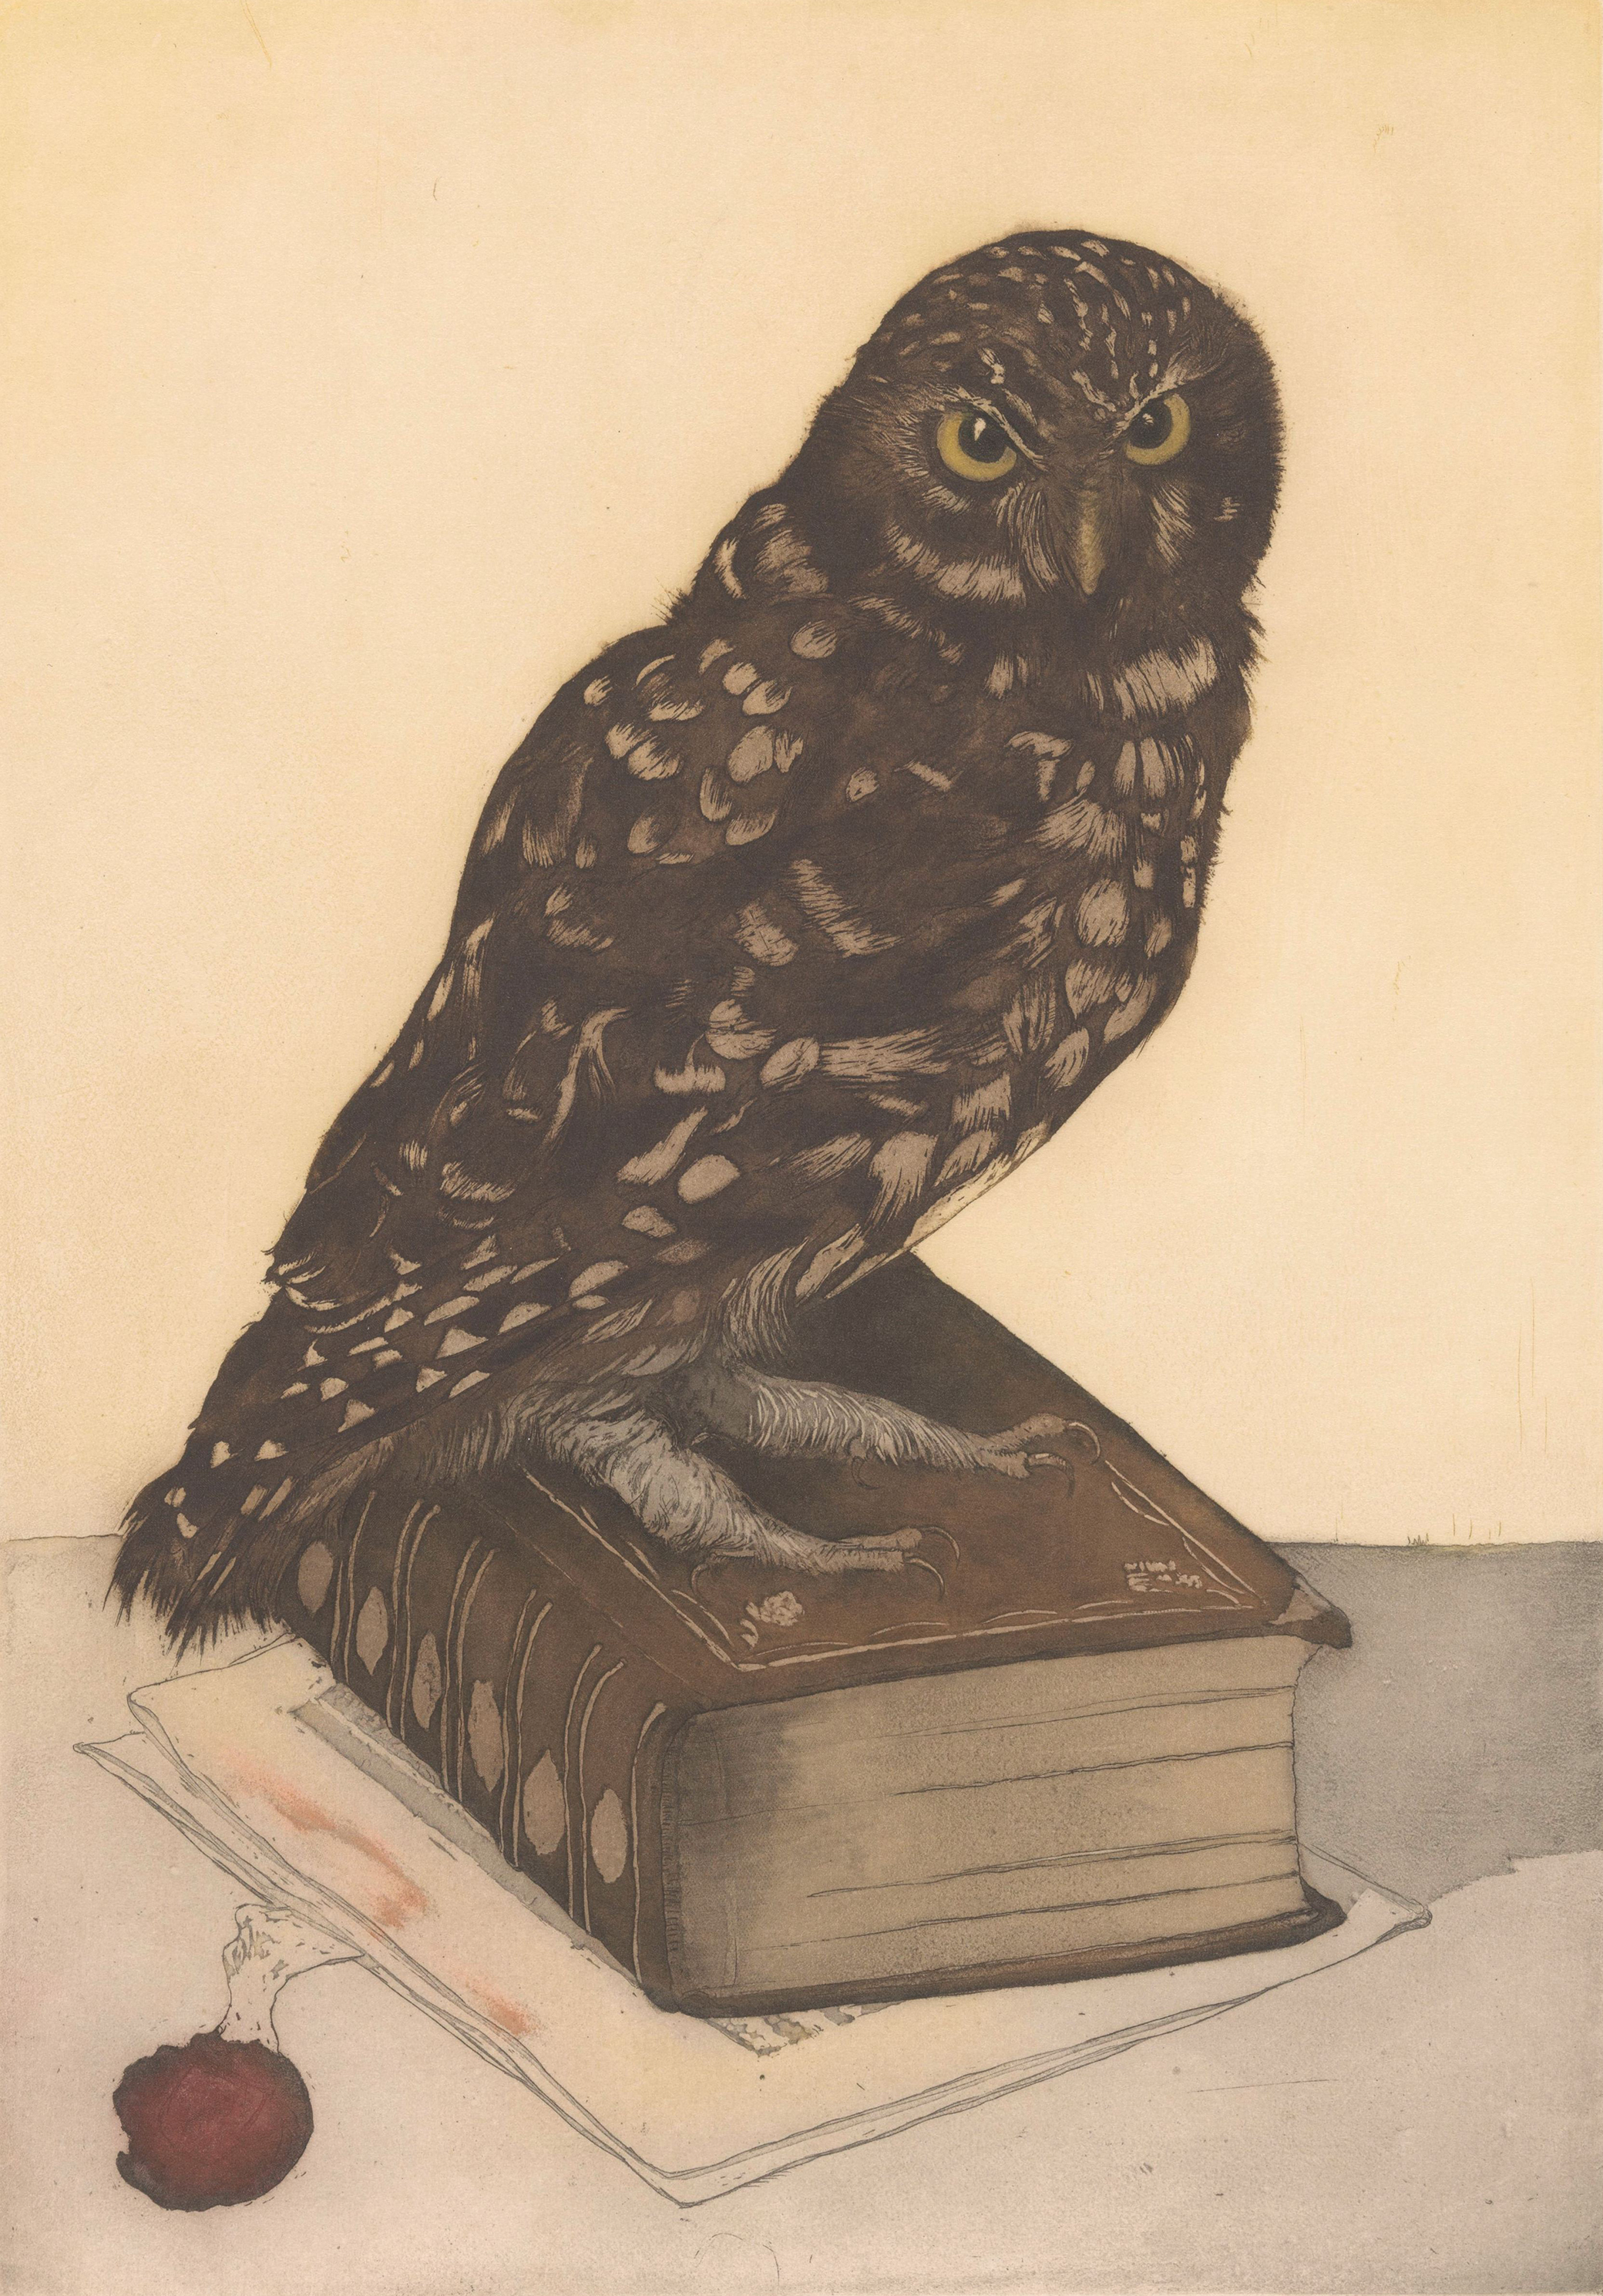 Owl sitting on a book, etching by Frans Everbag, c. 1900.